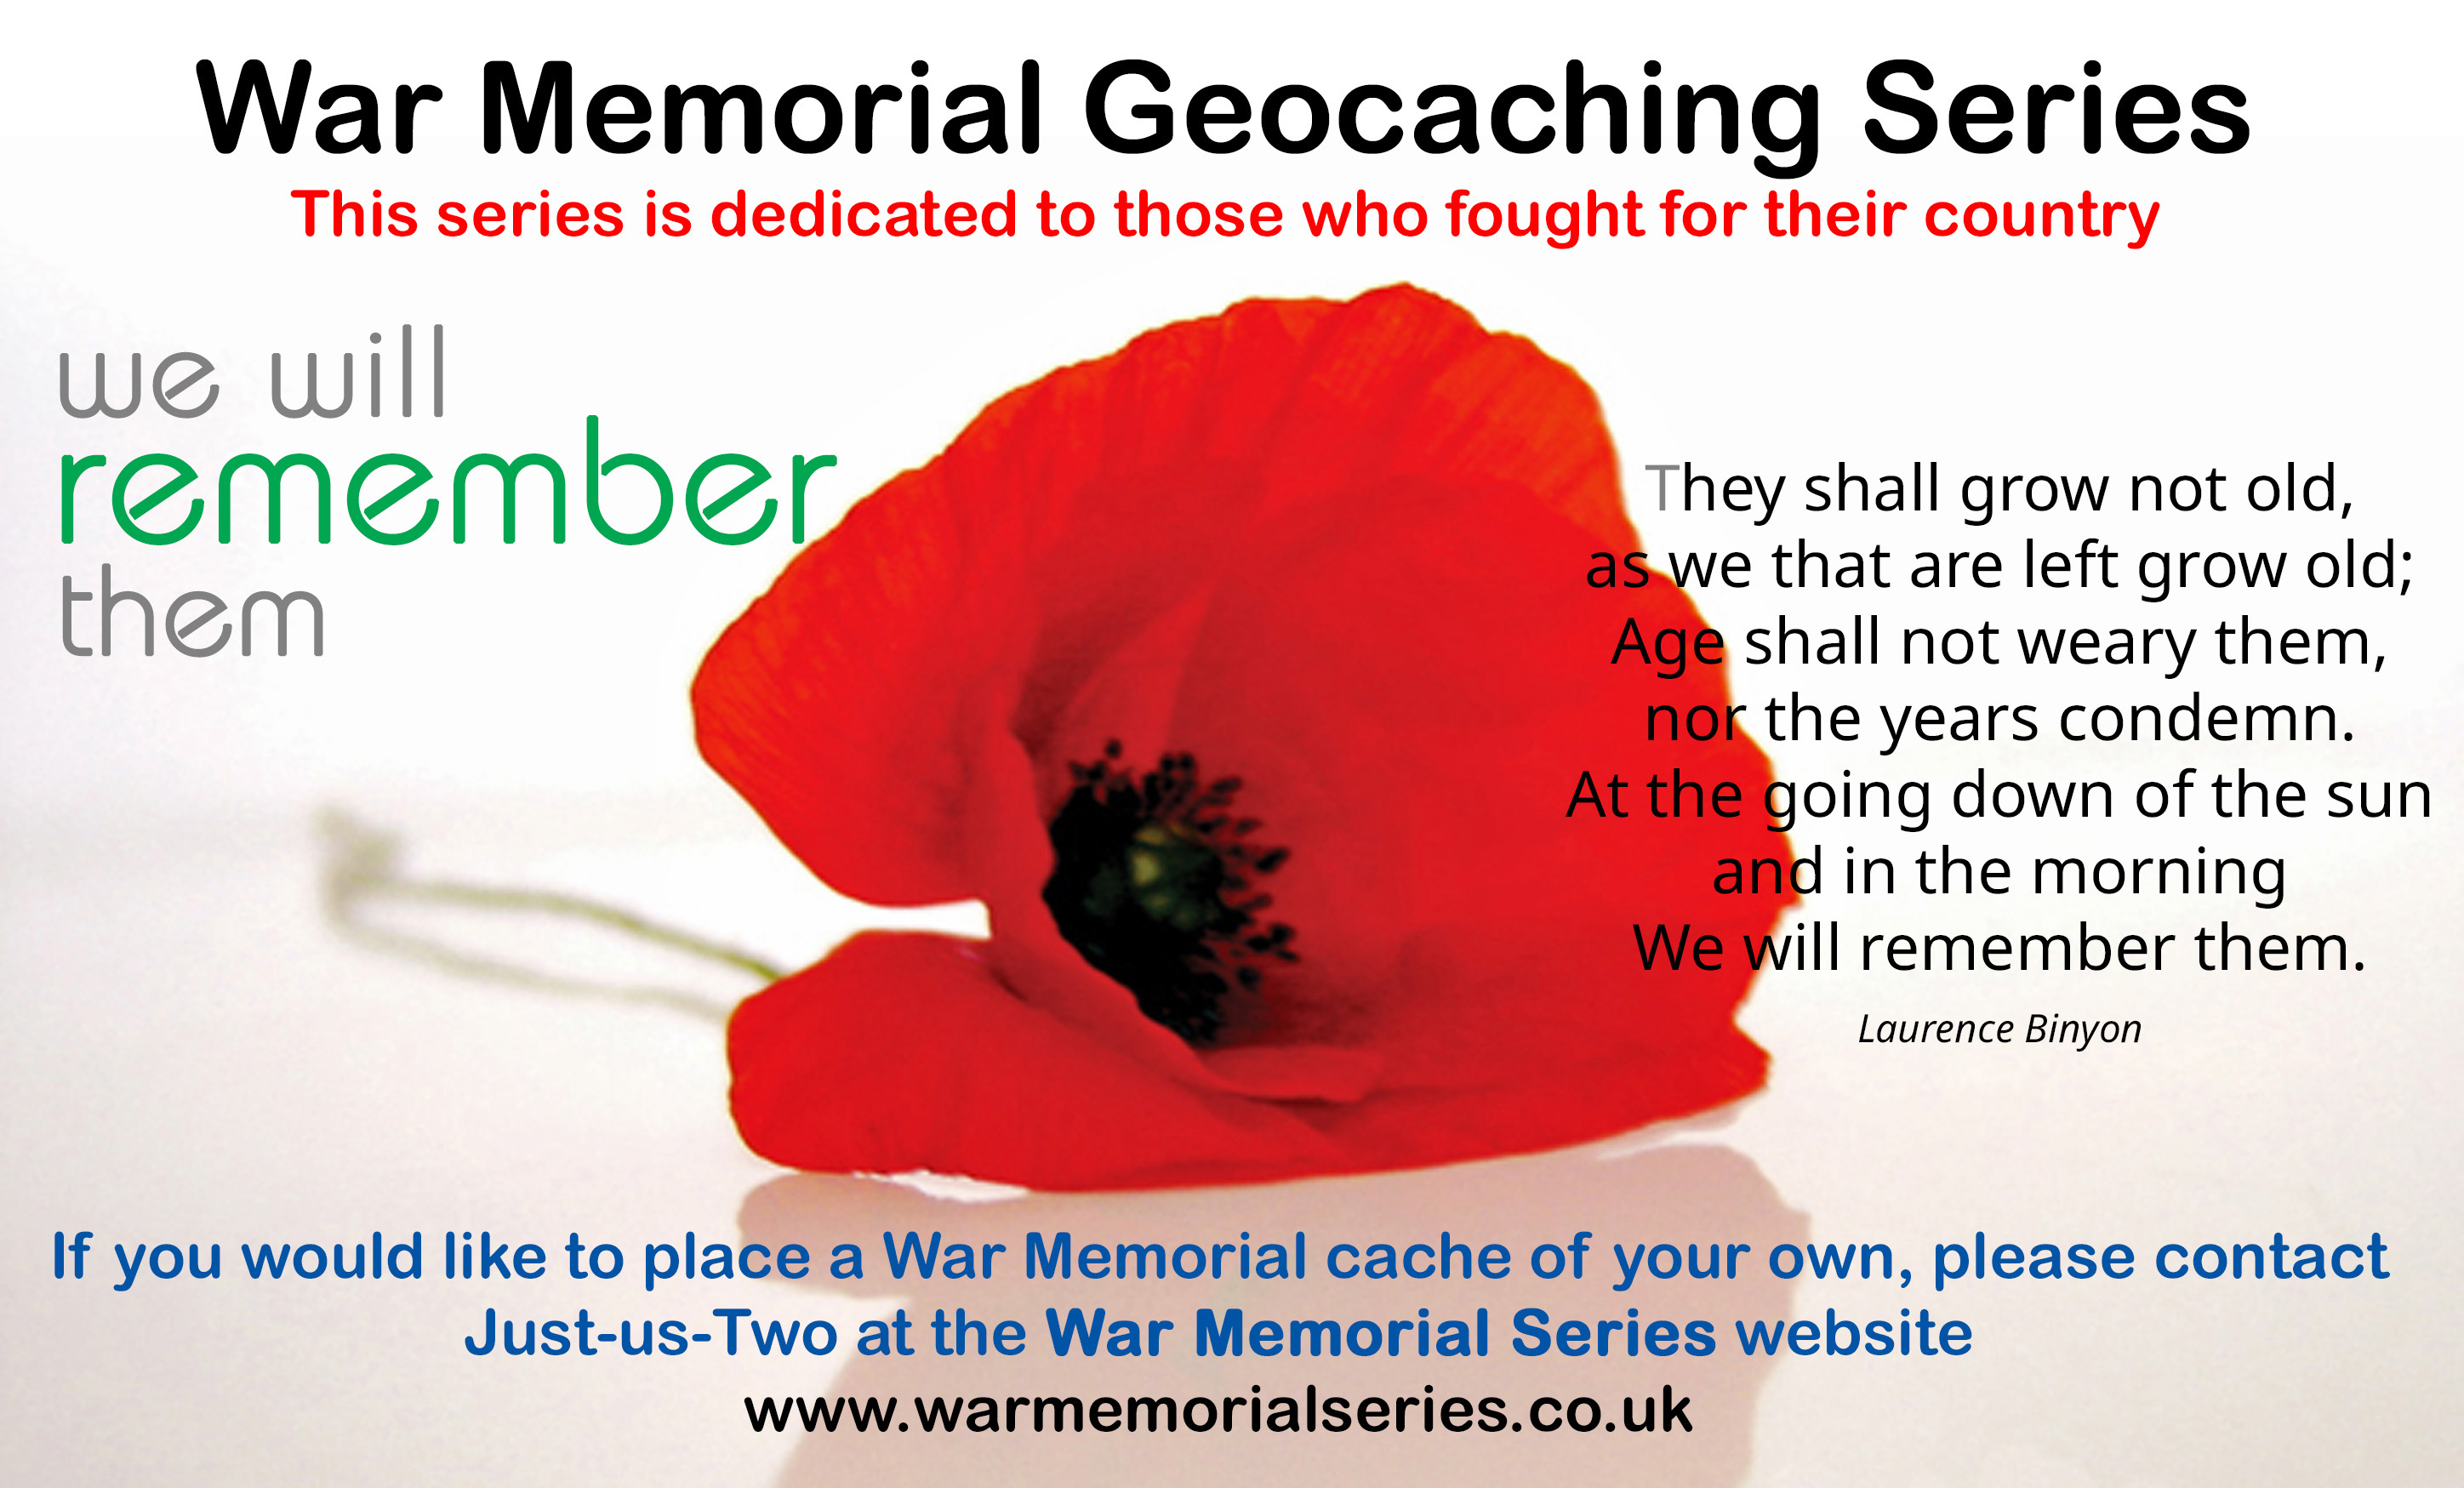 link to information about other WM We will remember them caches